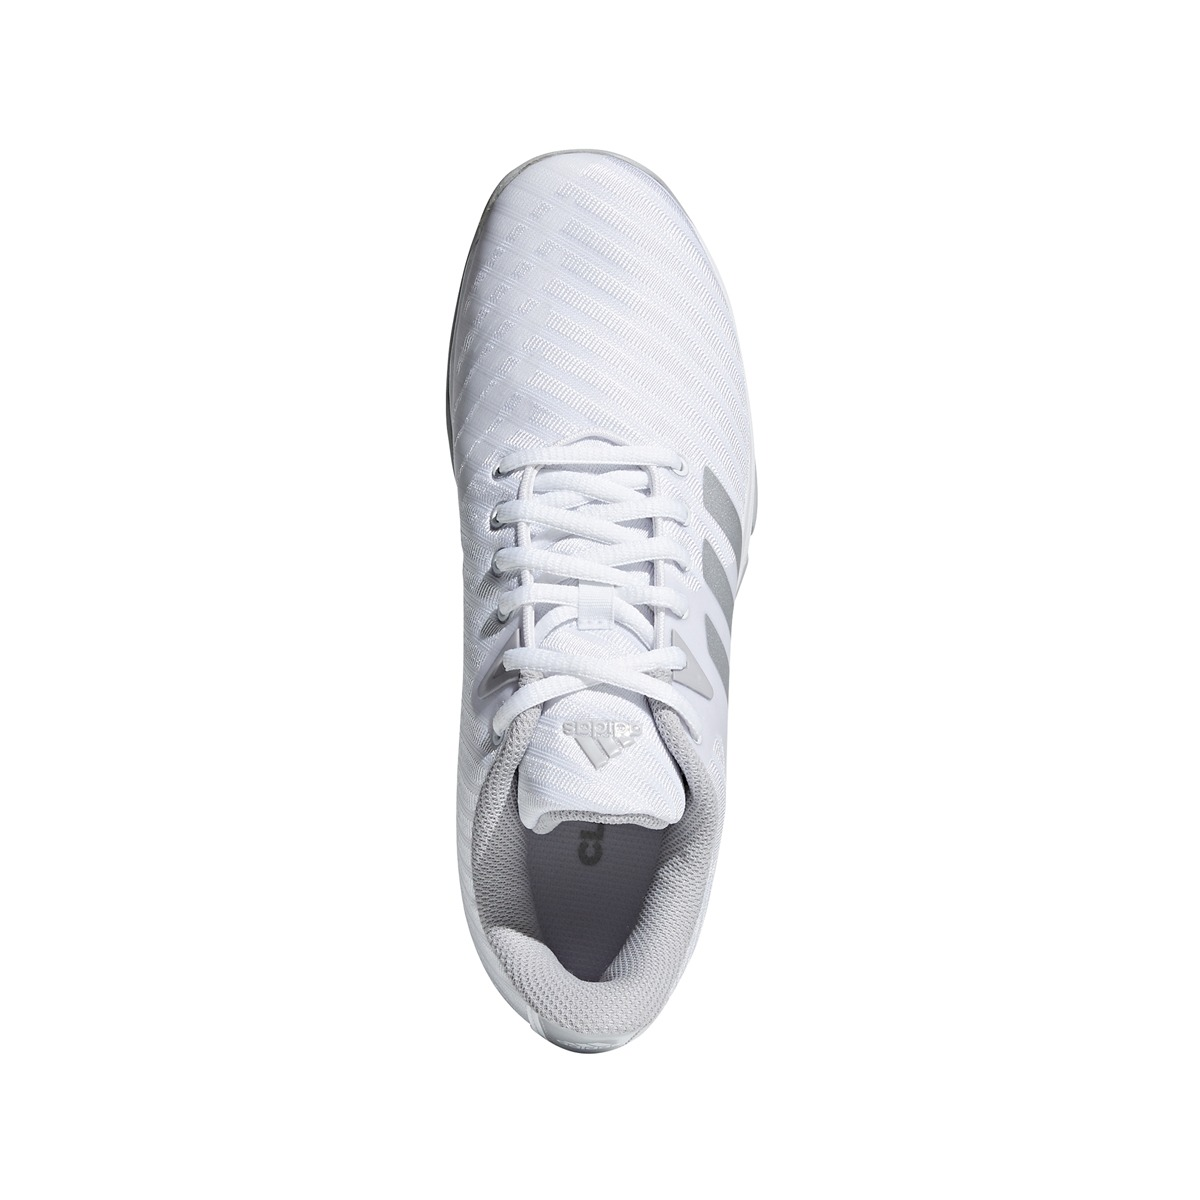 new products bea56 88663 zapatillas adidas tennis barricade court w mujer blgr. Cargando zoom.